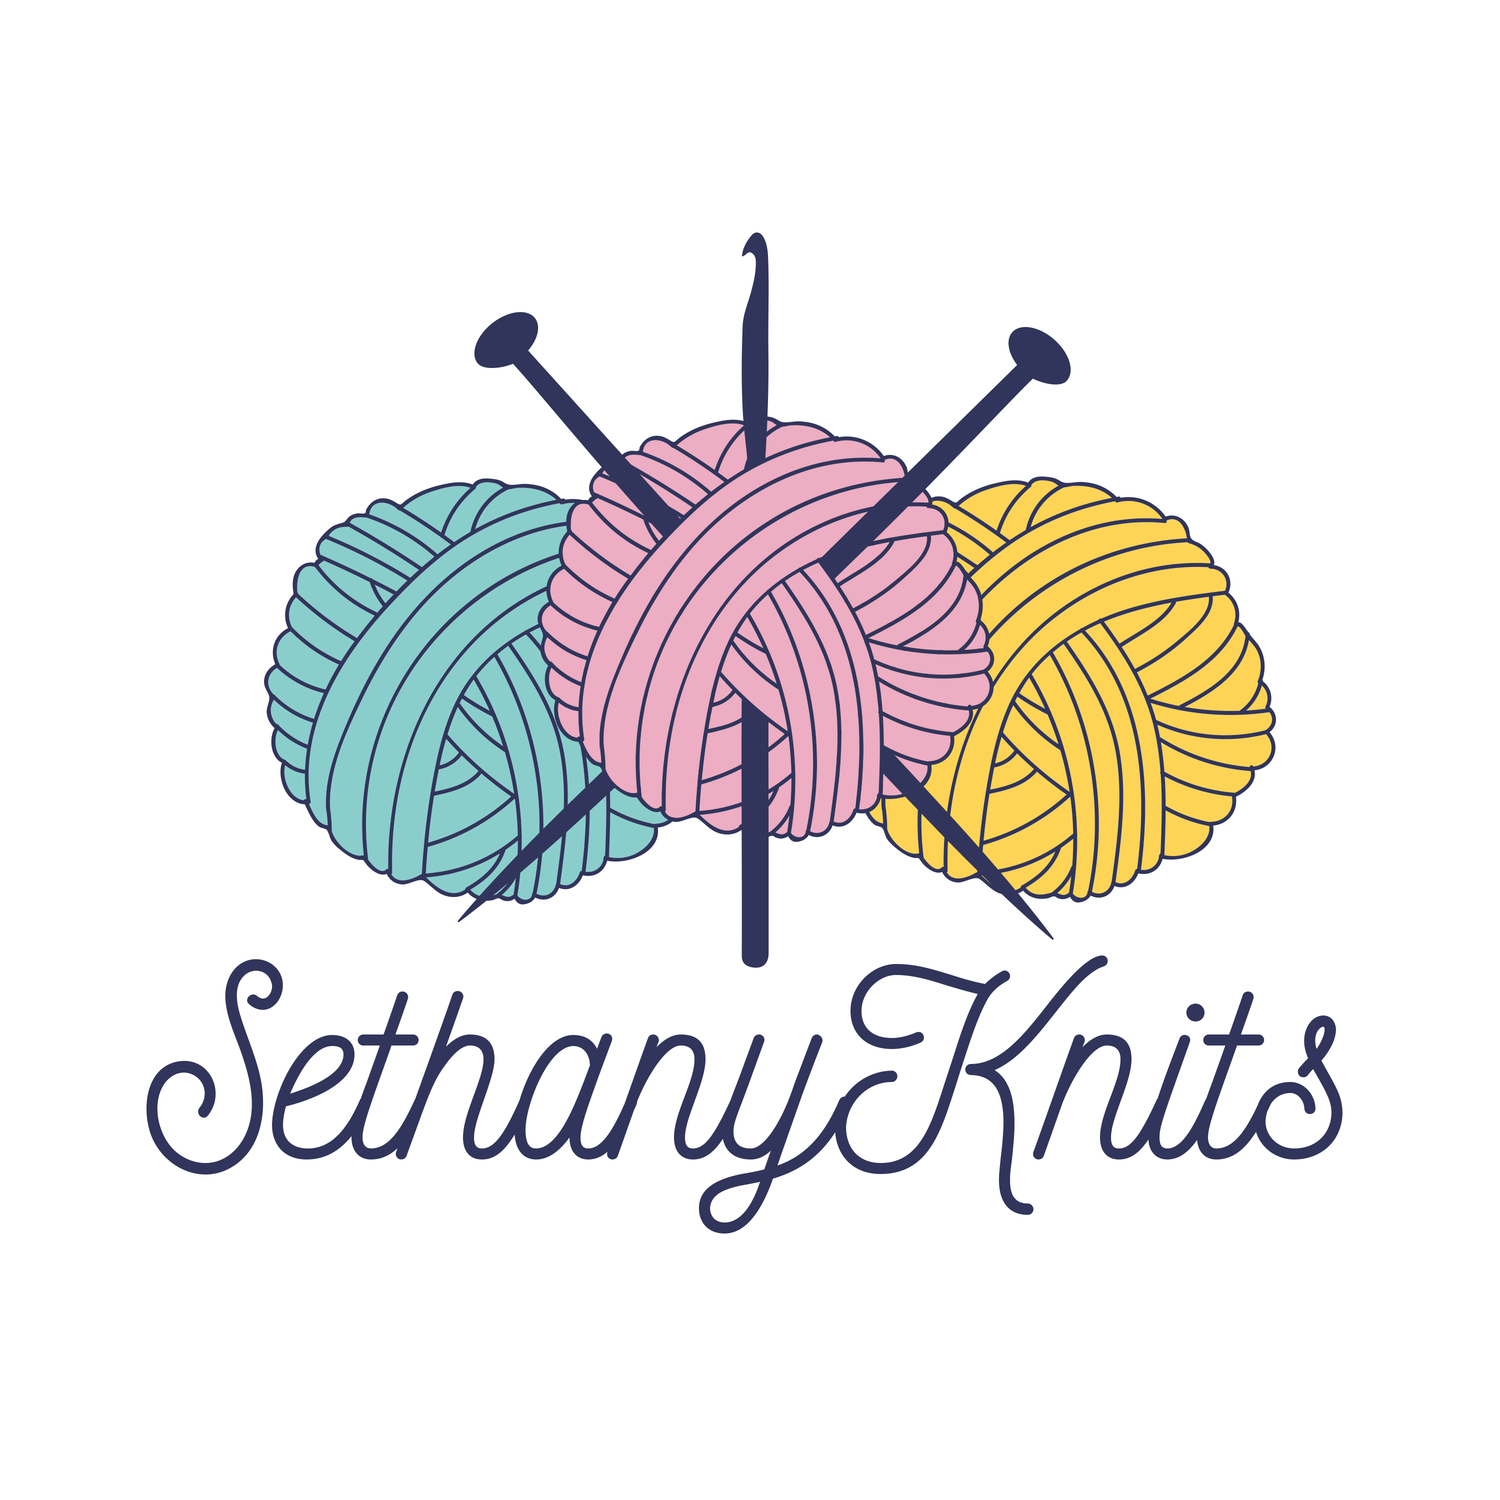 SethanyKnits, a family yarn shop